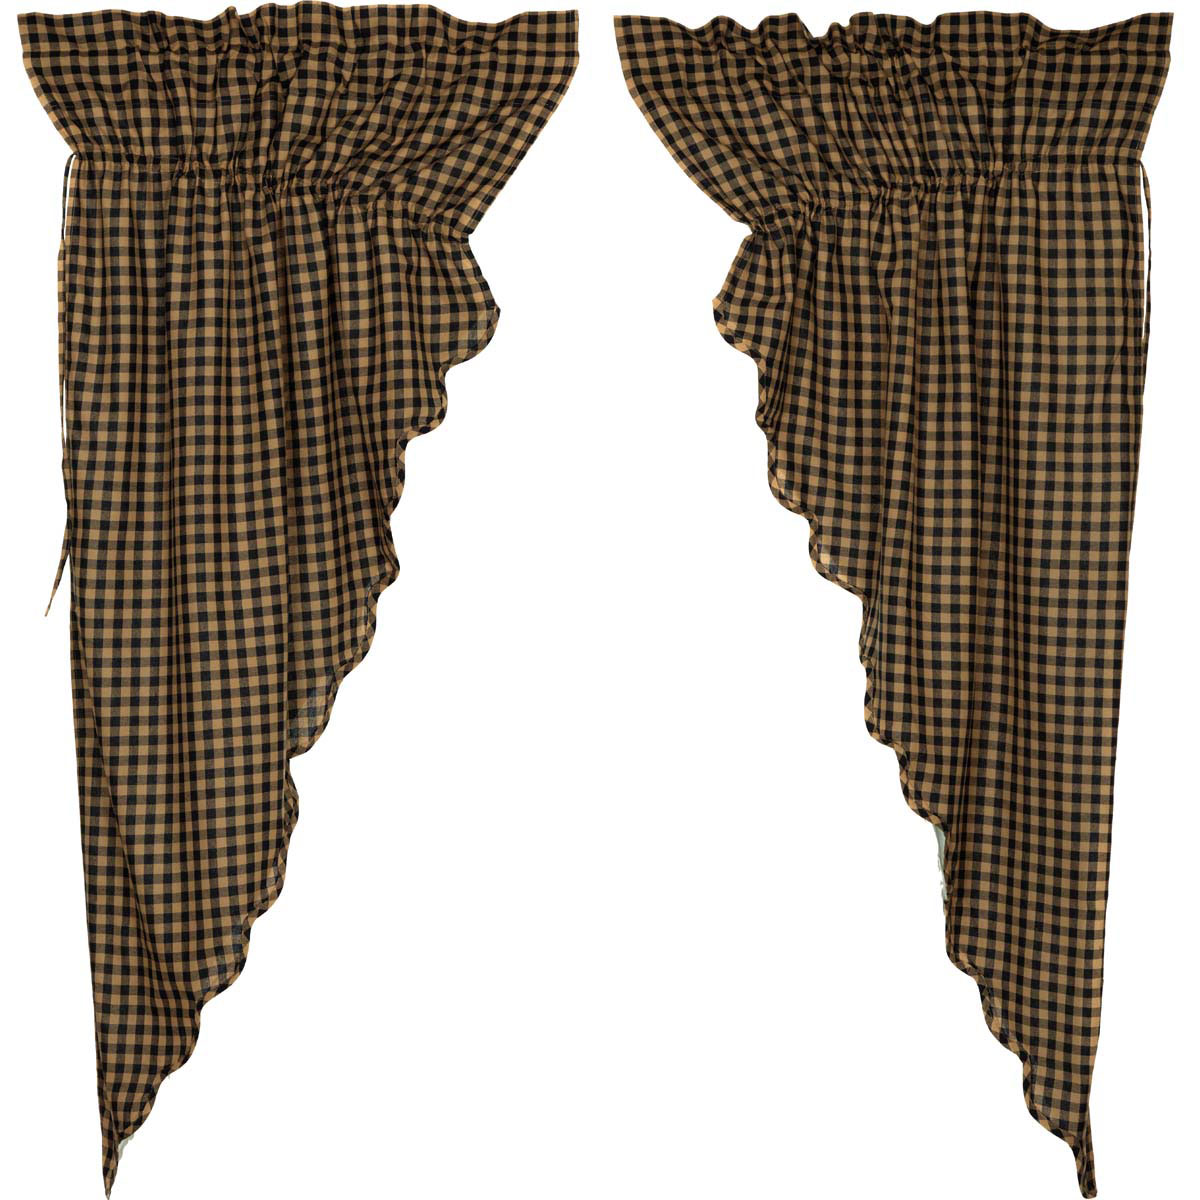 102 Inch Curtains Black Check Prairie Curtain By Nancy S Nook The Weed Patch